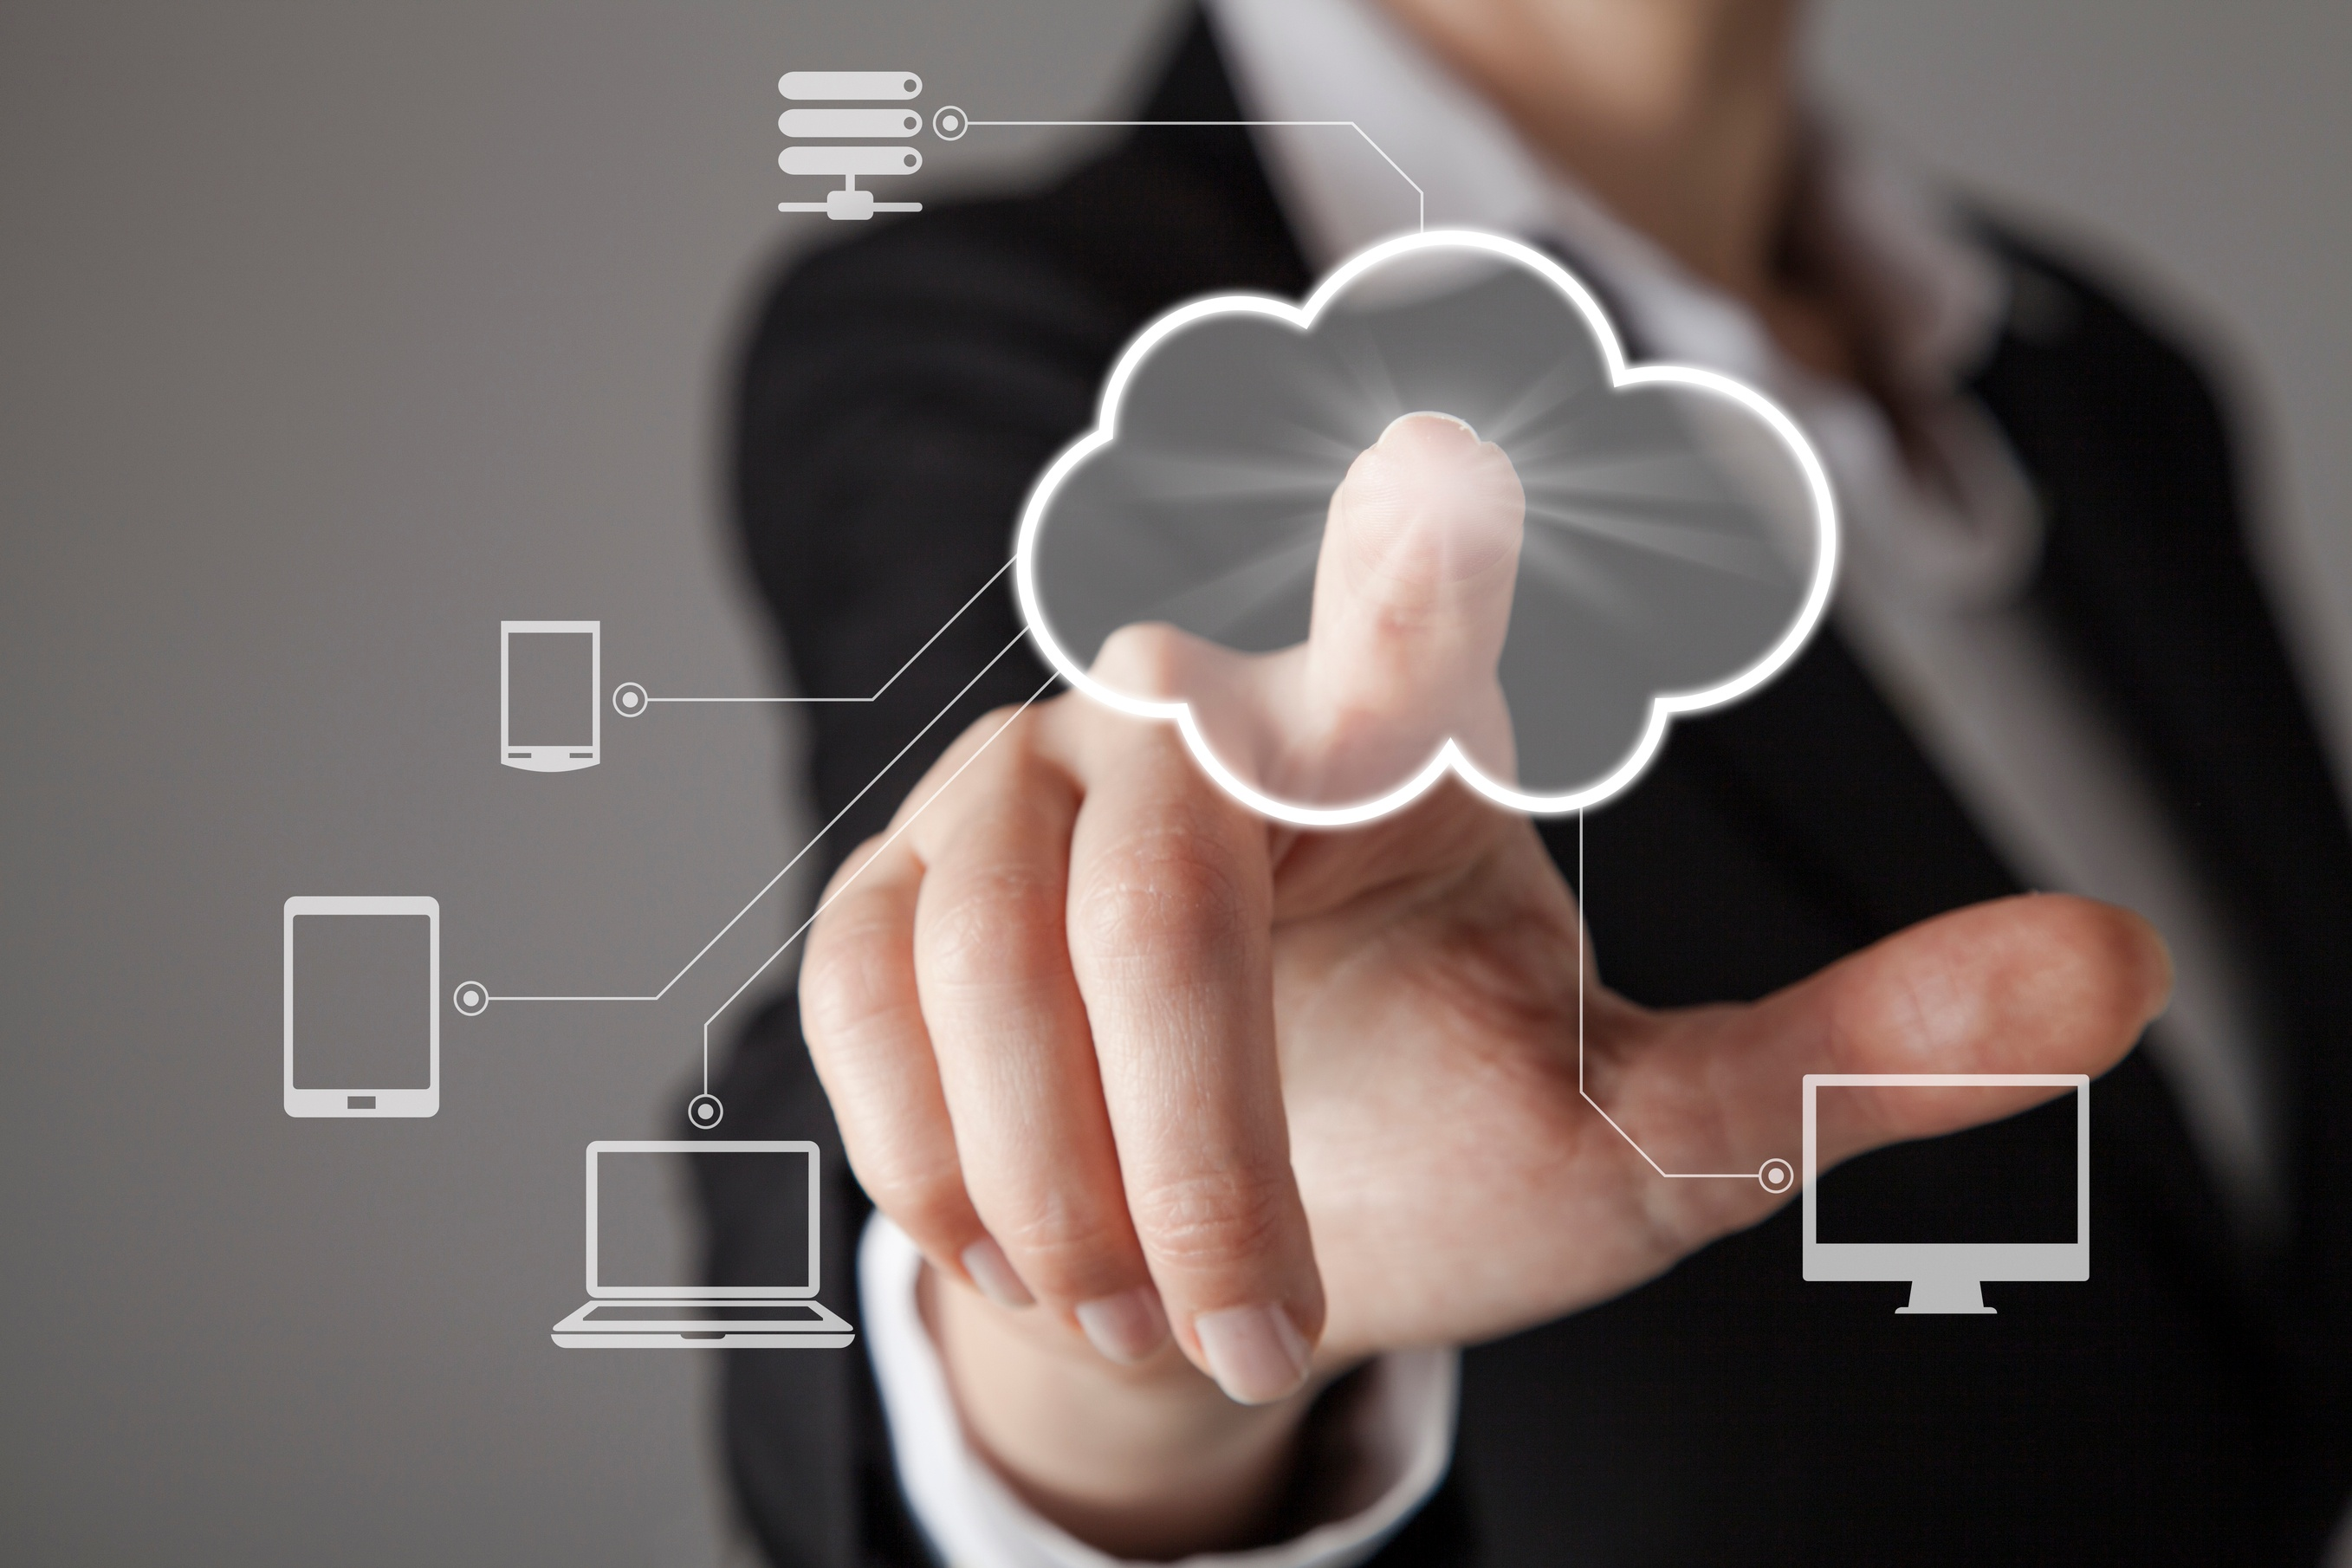 4_Reasons_Why_Big_Data_Analytics_in_the_Cloud_is_a_Great_Idea.jpg